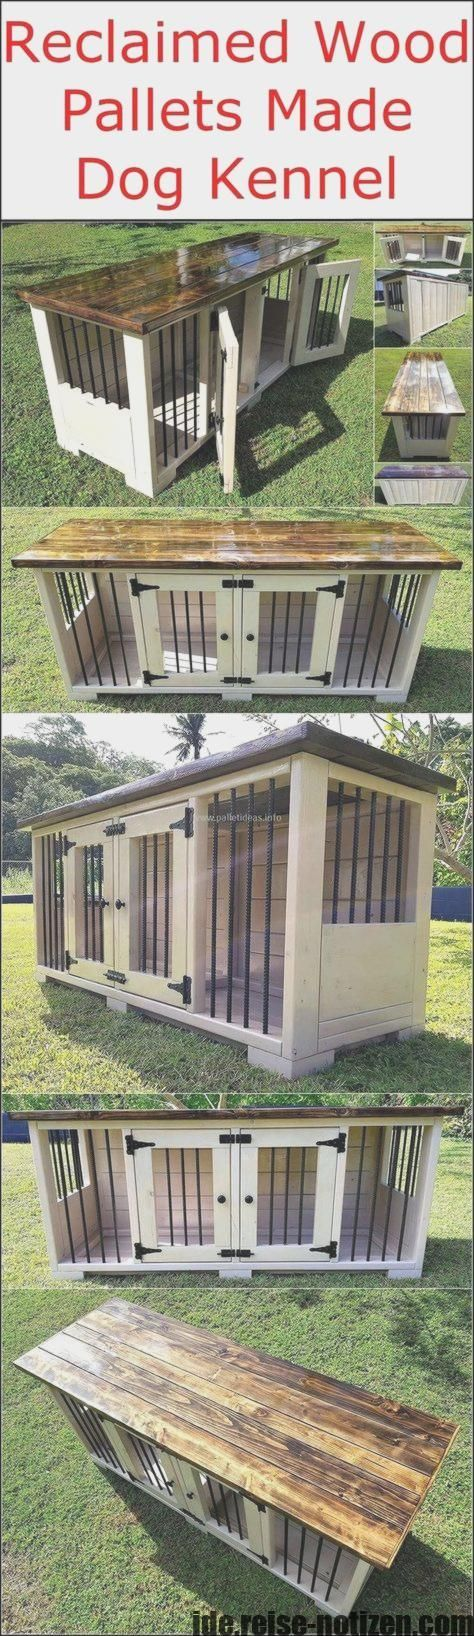 Latest Snap Shots Best Snap Shots metal Dog Kennel Popular  On the 20 The month of february this Ideas Nowadays dogs are full household members but this has not necessari...